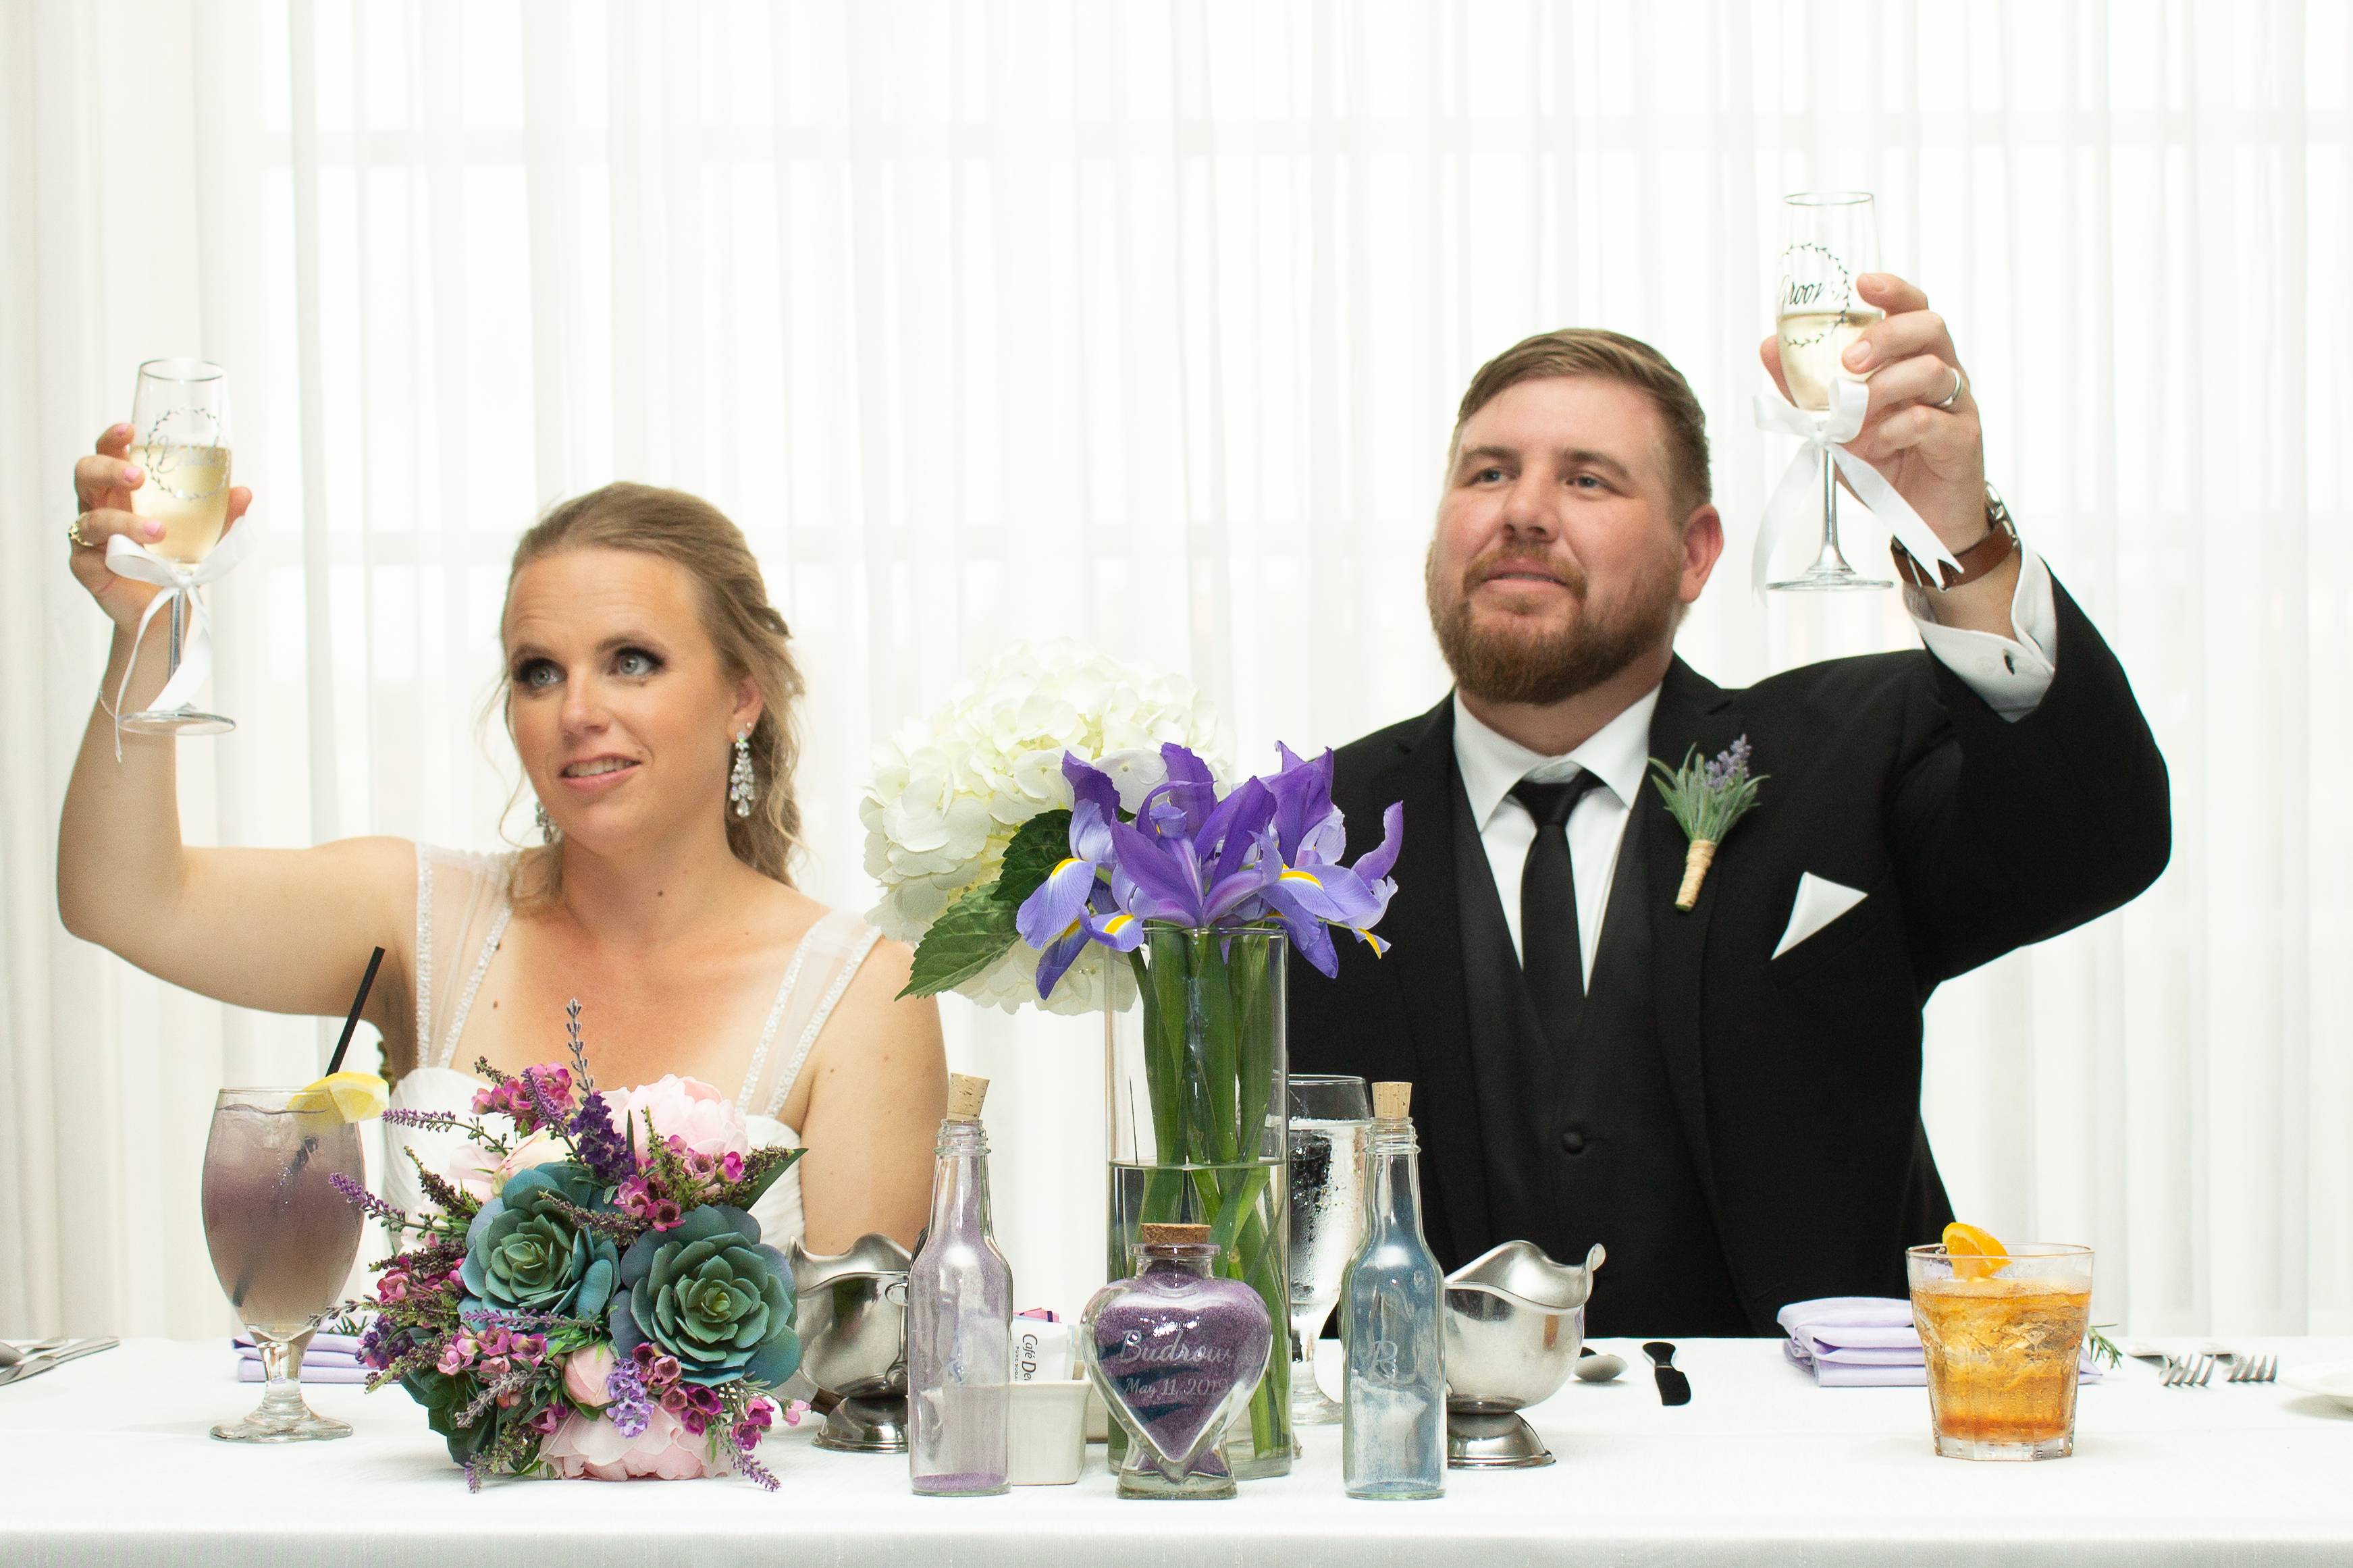 A bride and groom holding their champagne glasses up to toast. They are seated at a white-draped table with a centerpiece of purple iris. Also on the table is the bride's succulent, lavender, and soft pink bouquet.